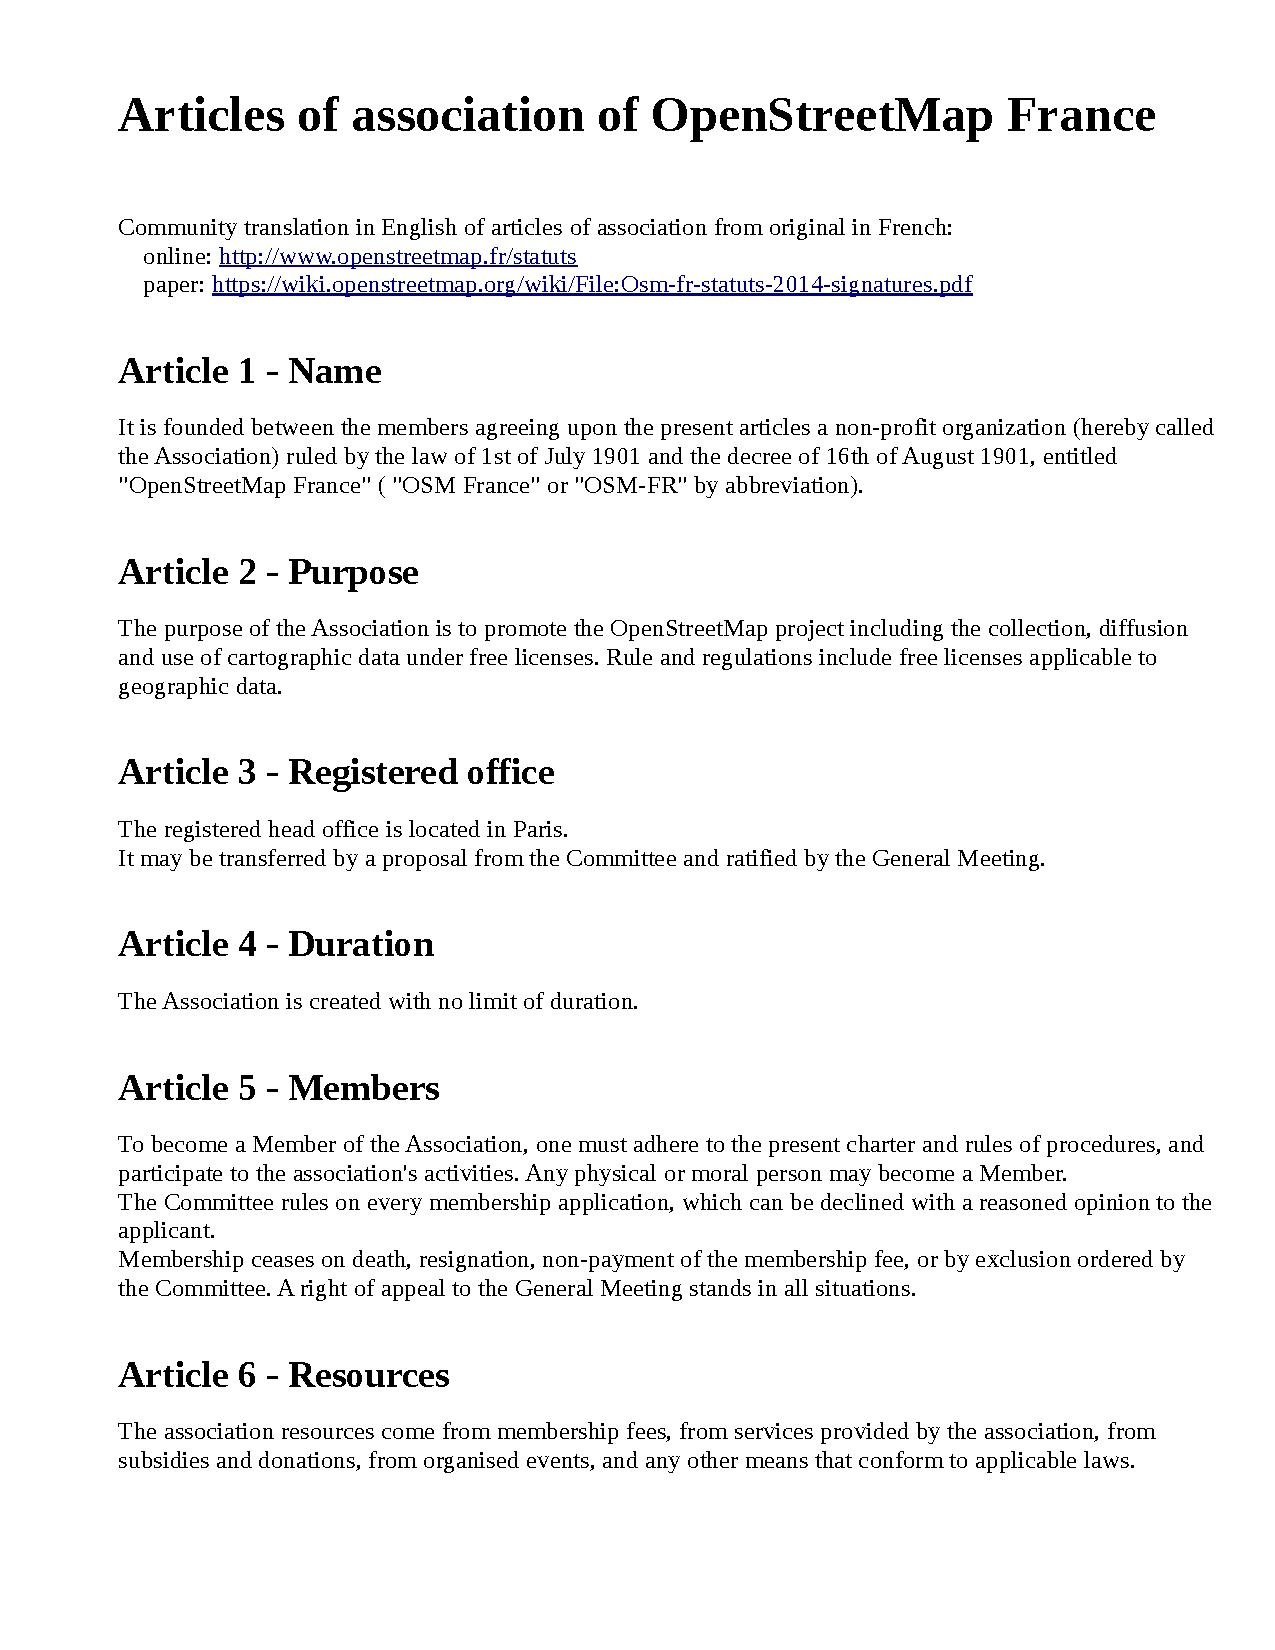 OSM FR articles of association.pdf